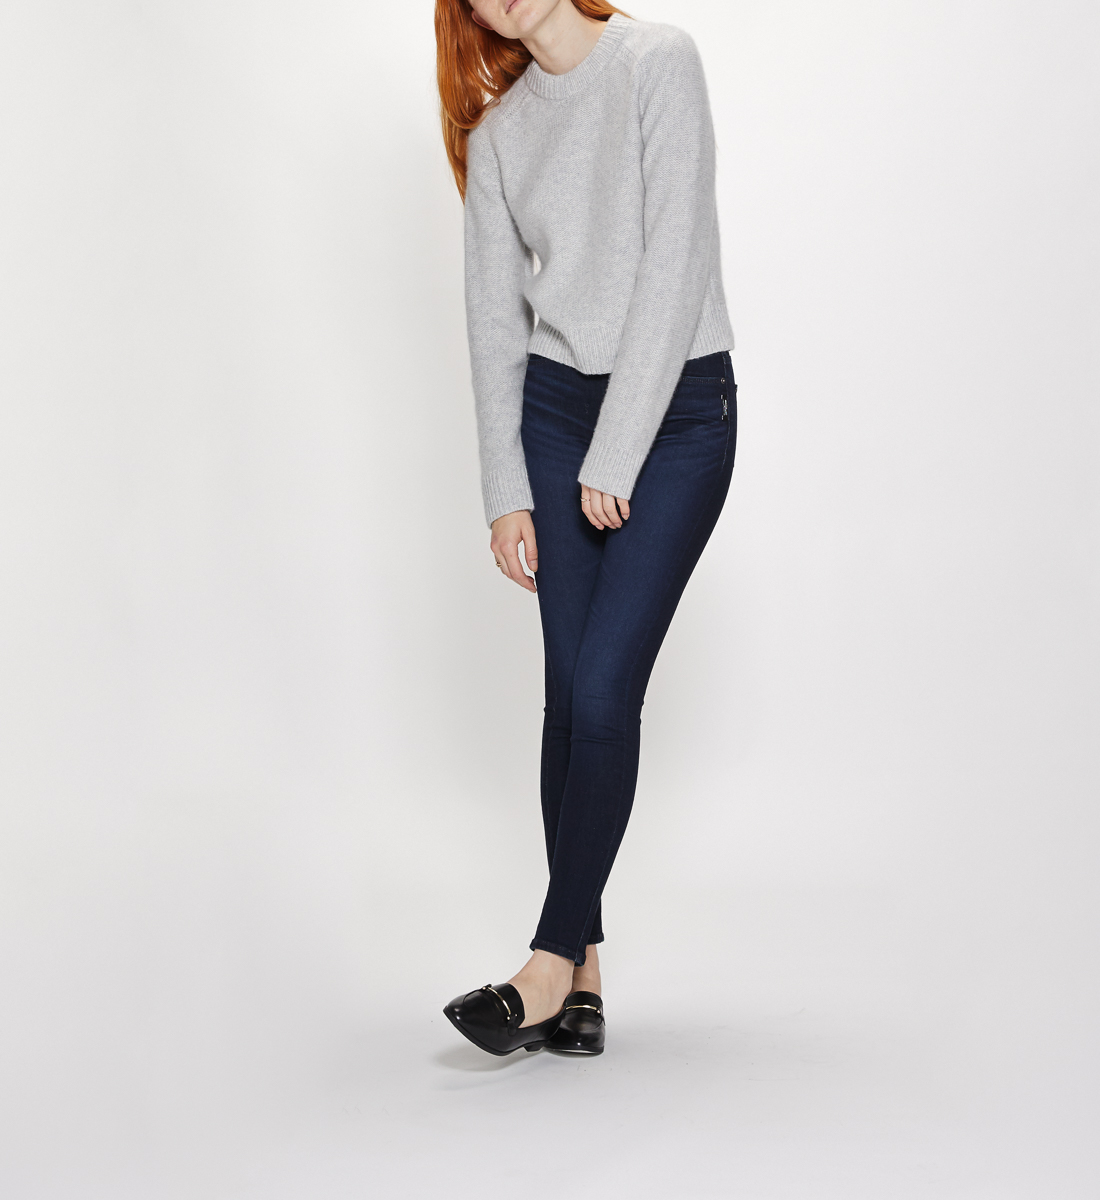 Mazy High Rise Skinny Leg Jeans Final Sale Alt Image 2